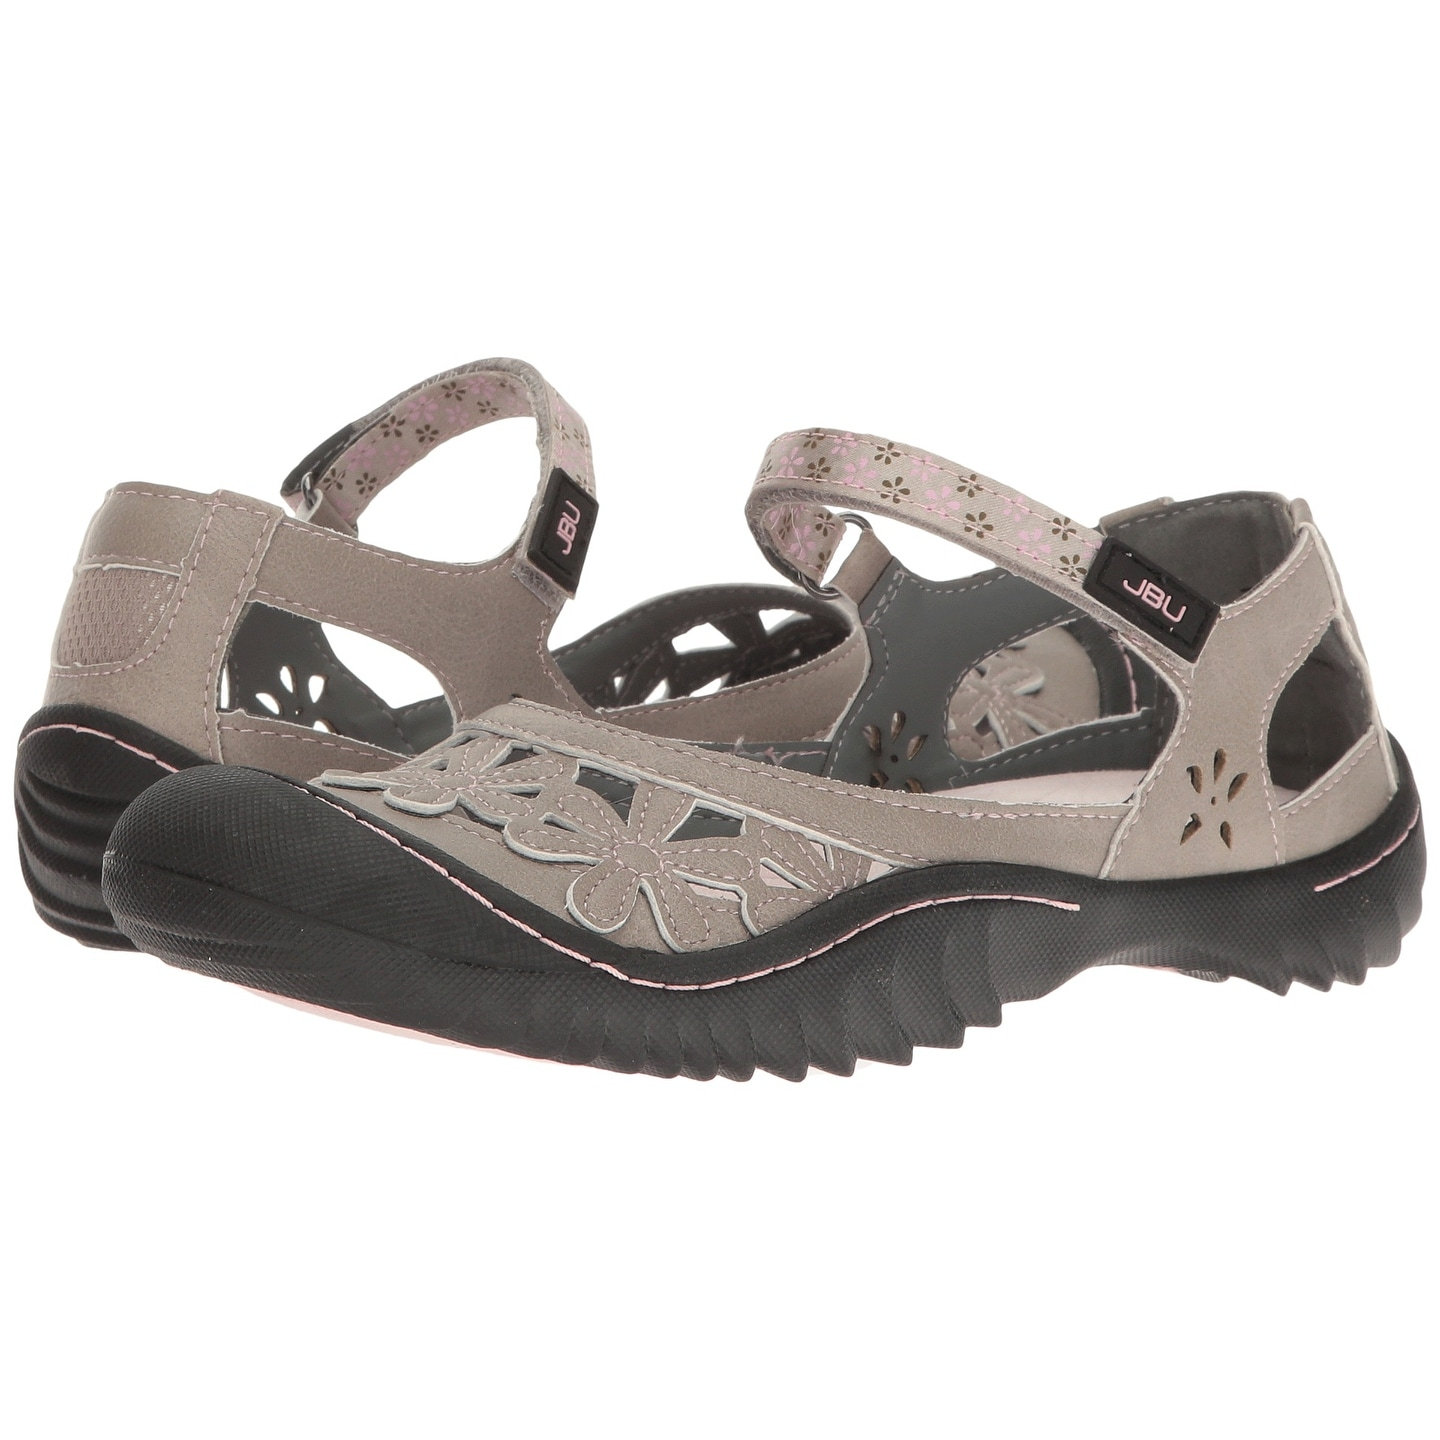 6a8e1c7d9e58 Shop Jambu Womens Wildflower Closed Toe Walking Sport Sandals - Free  Shipping On Orders Over  45 - Overstock - 17021901